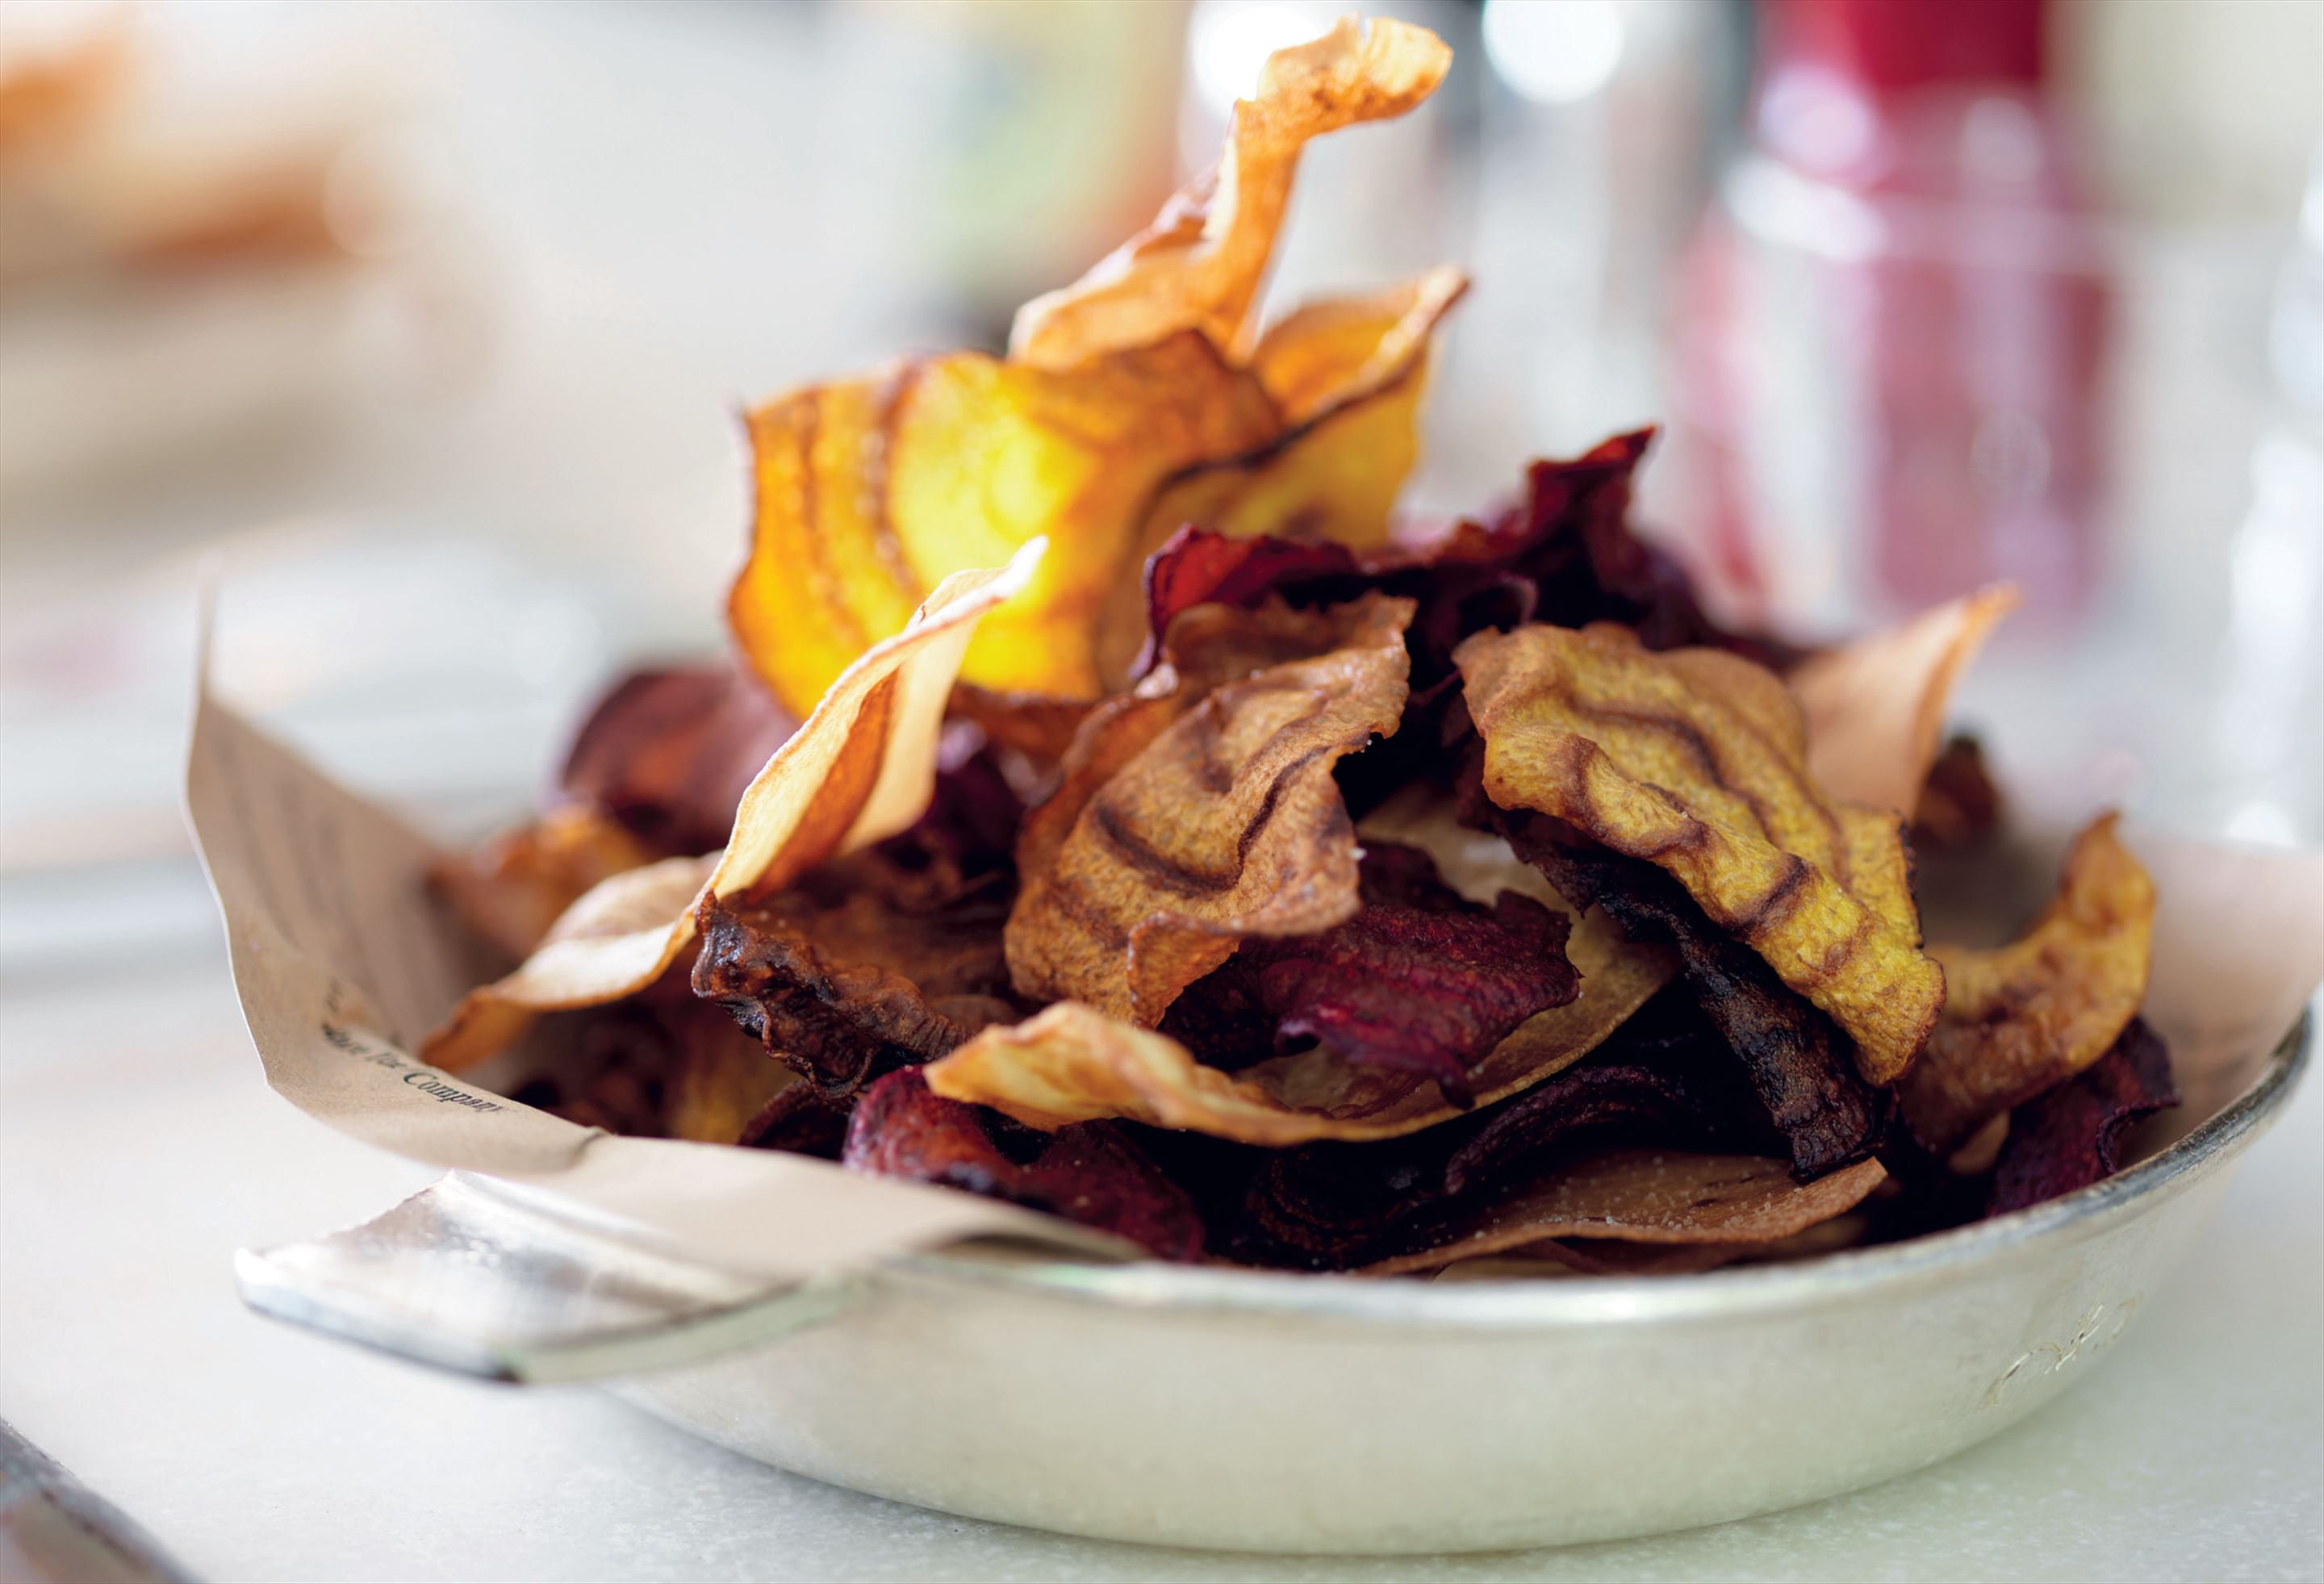 Vegetable crisps